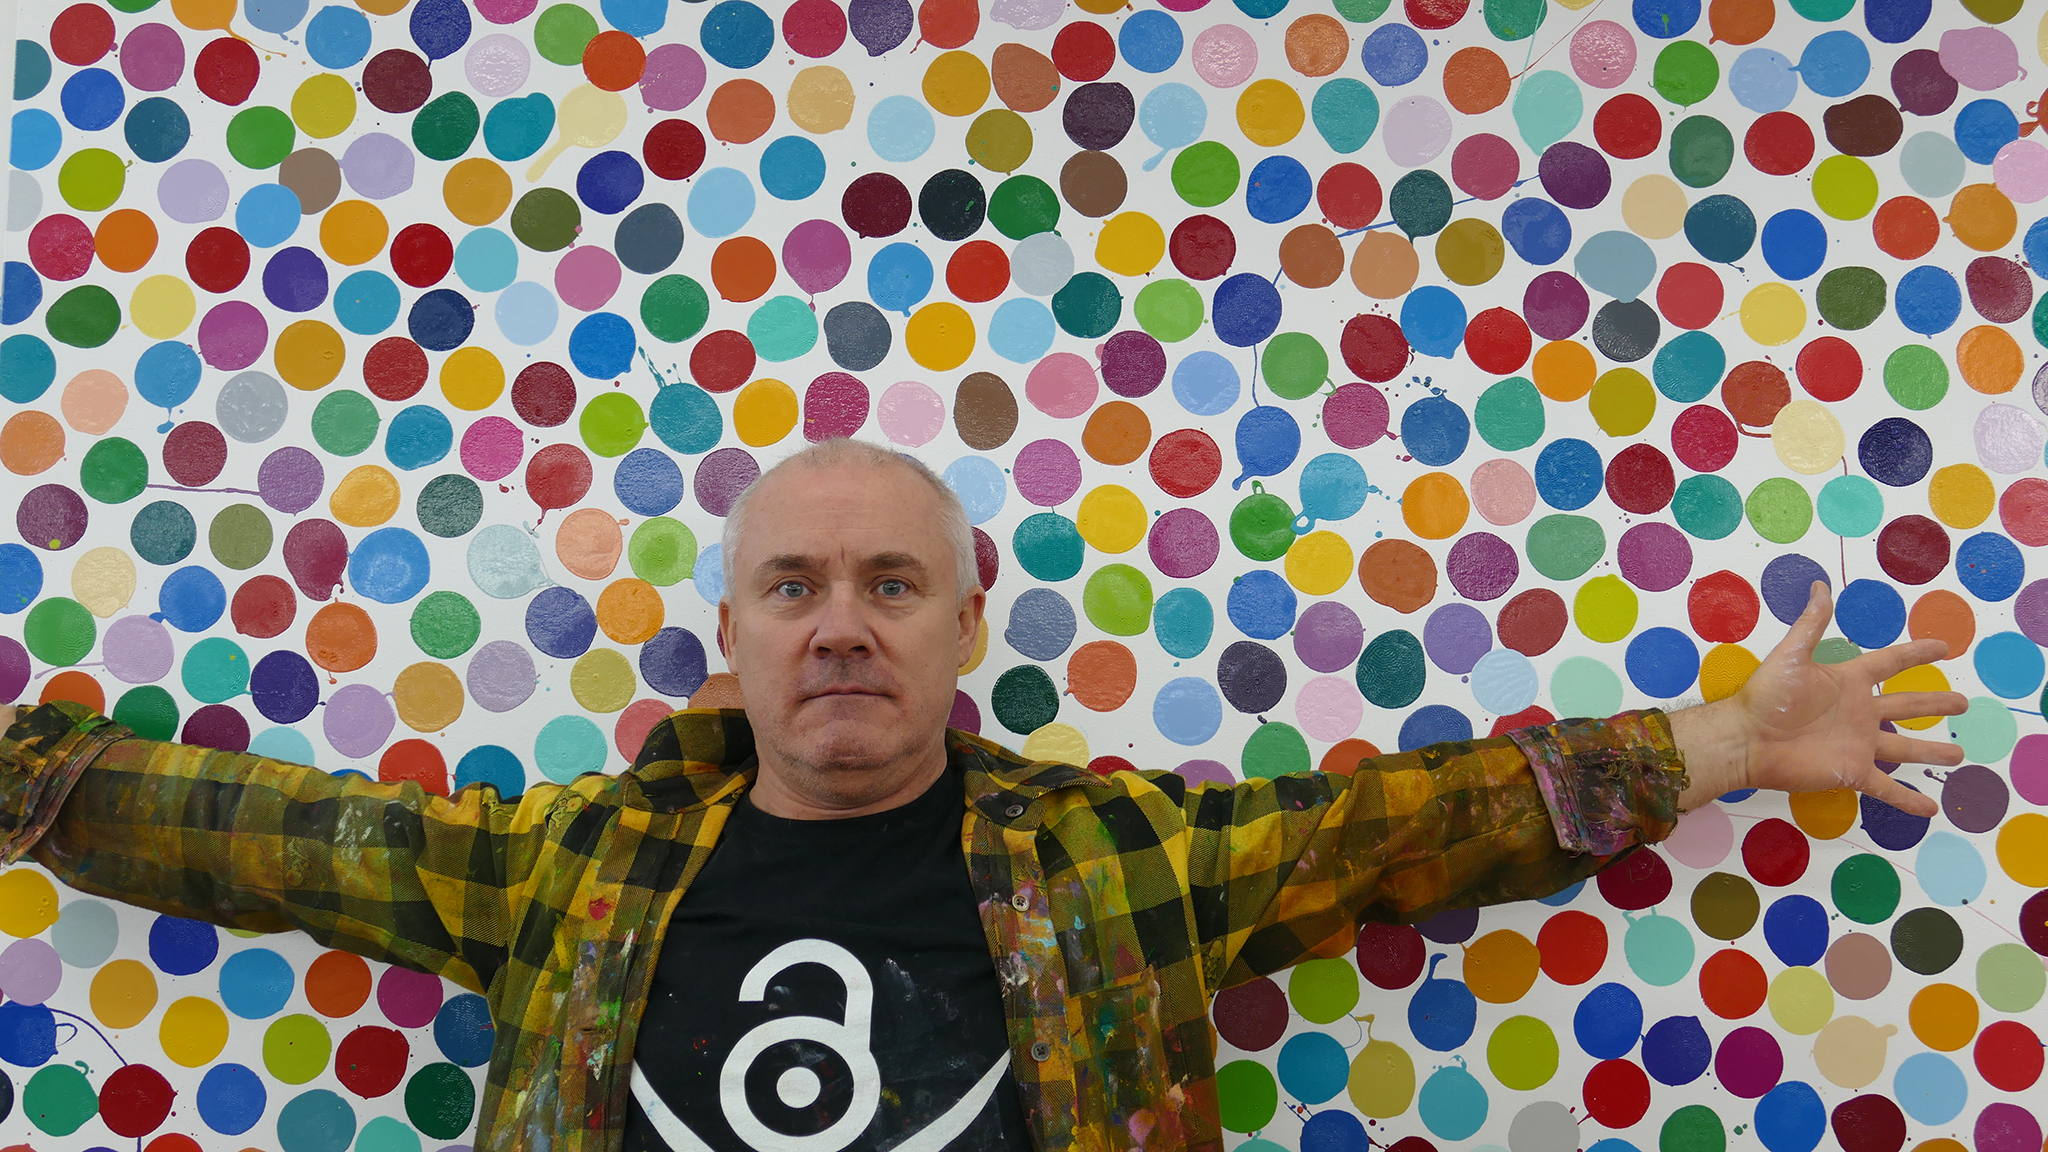 I Thought Maybe I M Not Good Enough Damien Hirst Confronts His Fear Of Painting Financial Times